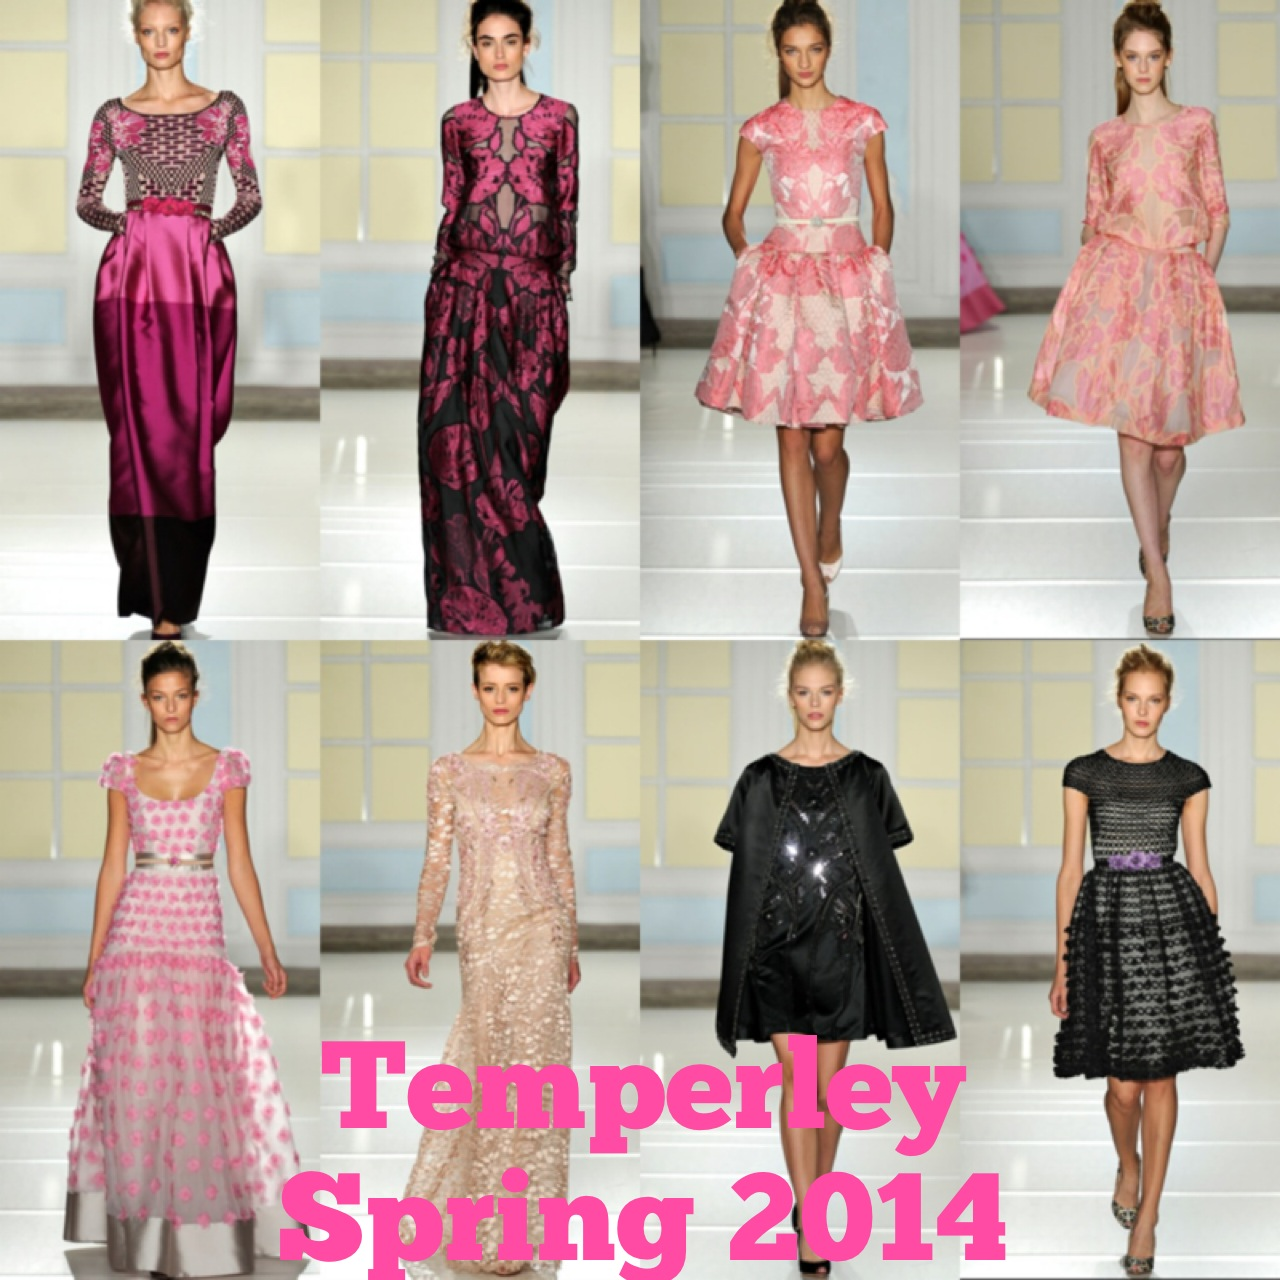 Spring 2014 Temperley London